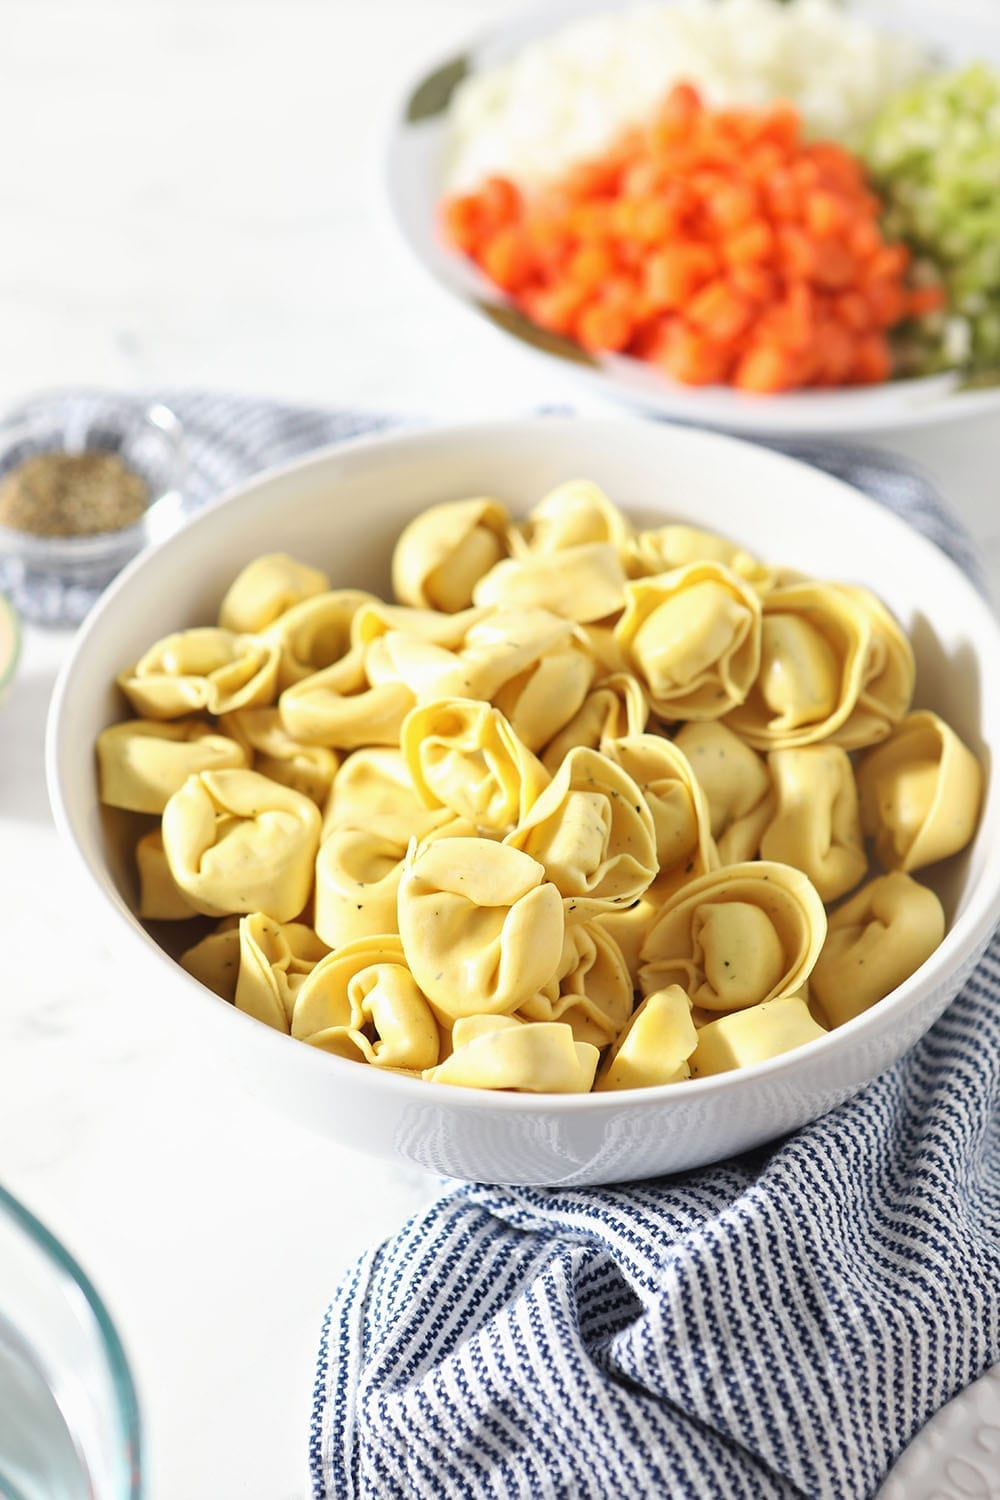 A bowl of cheese tortellini sits on a striped blue towel